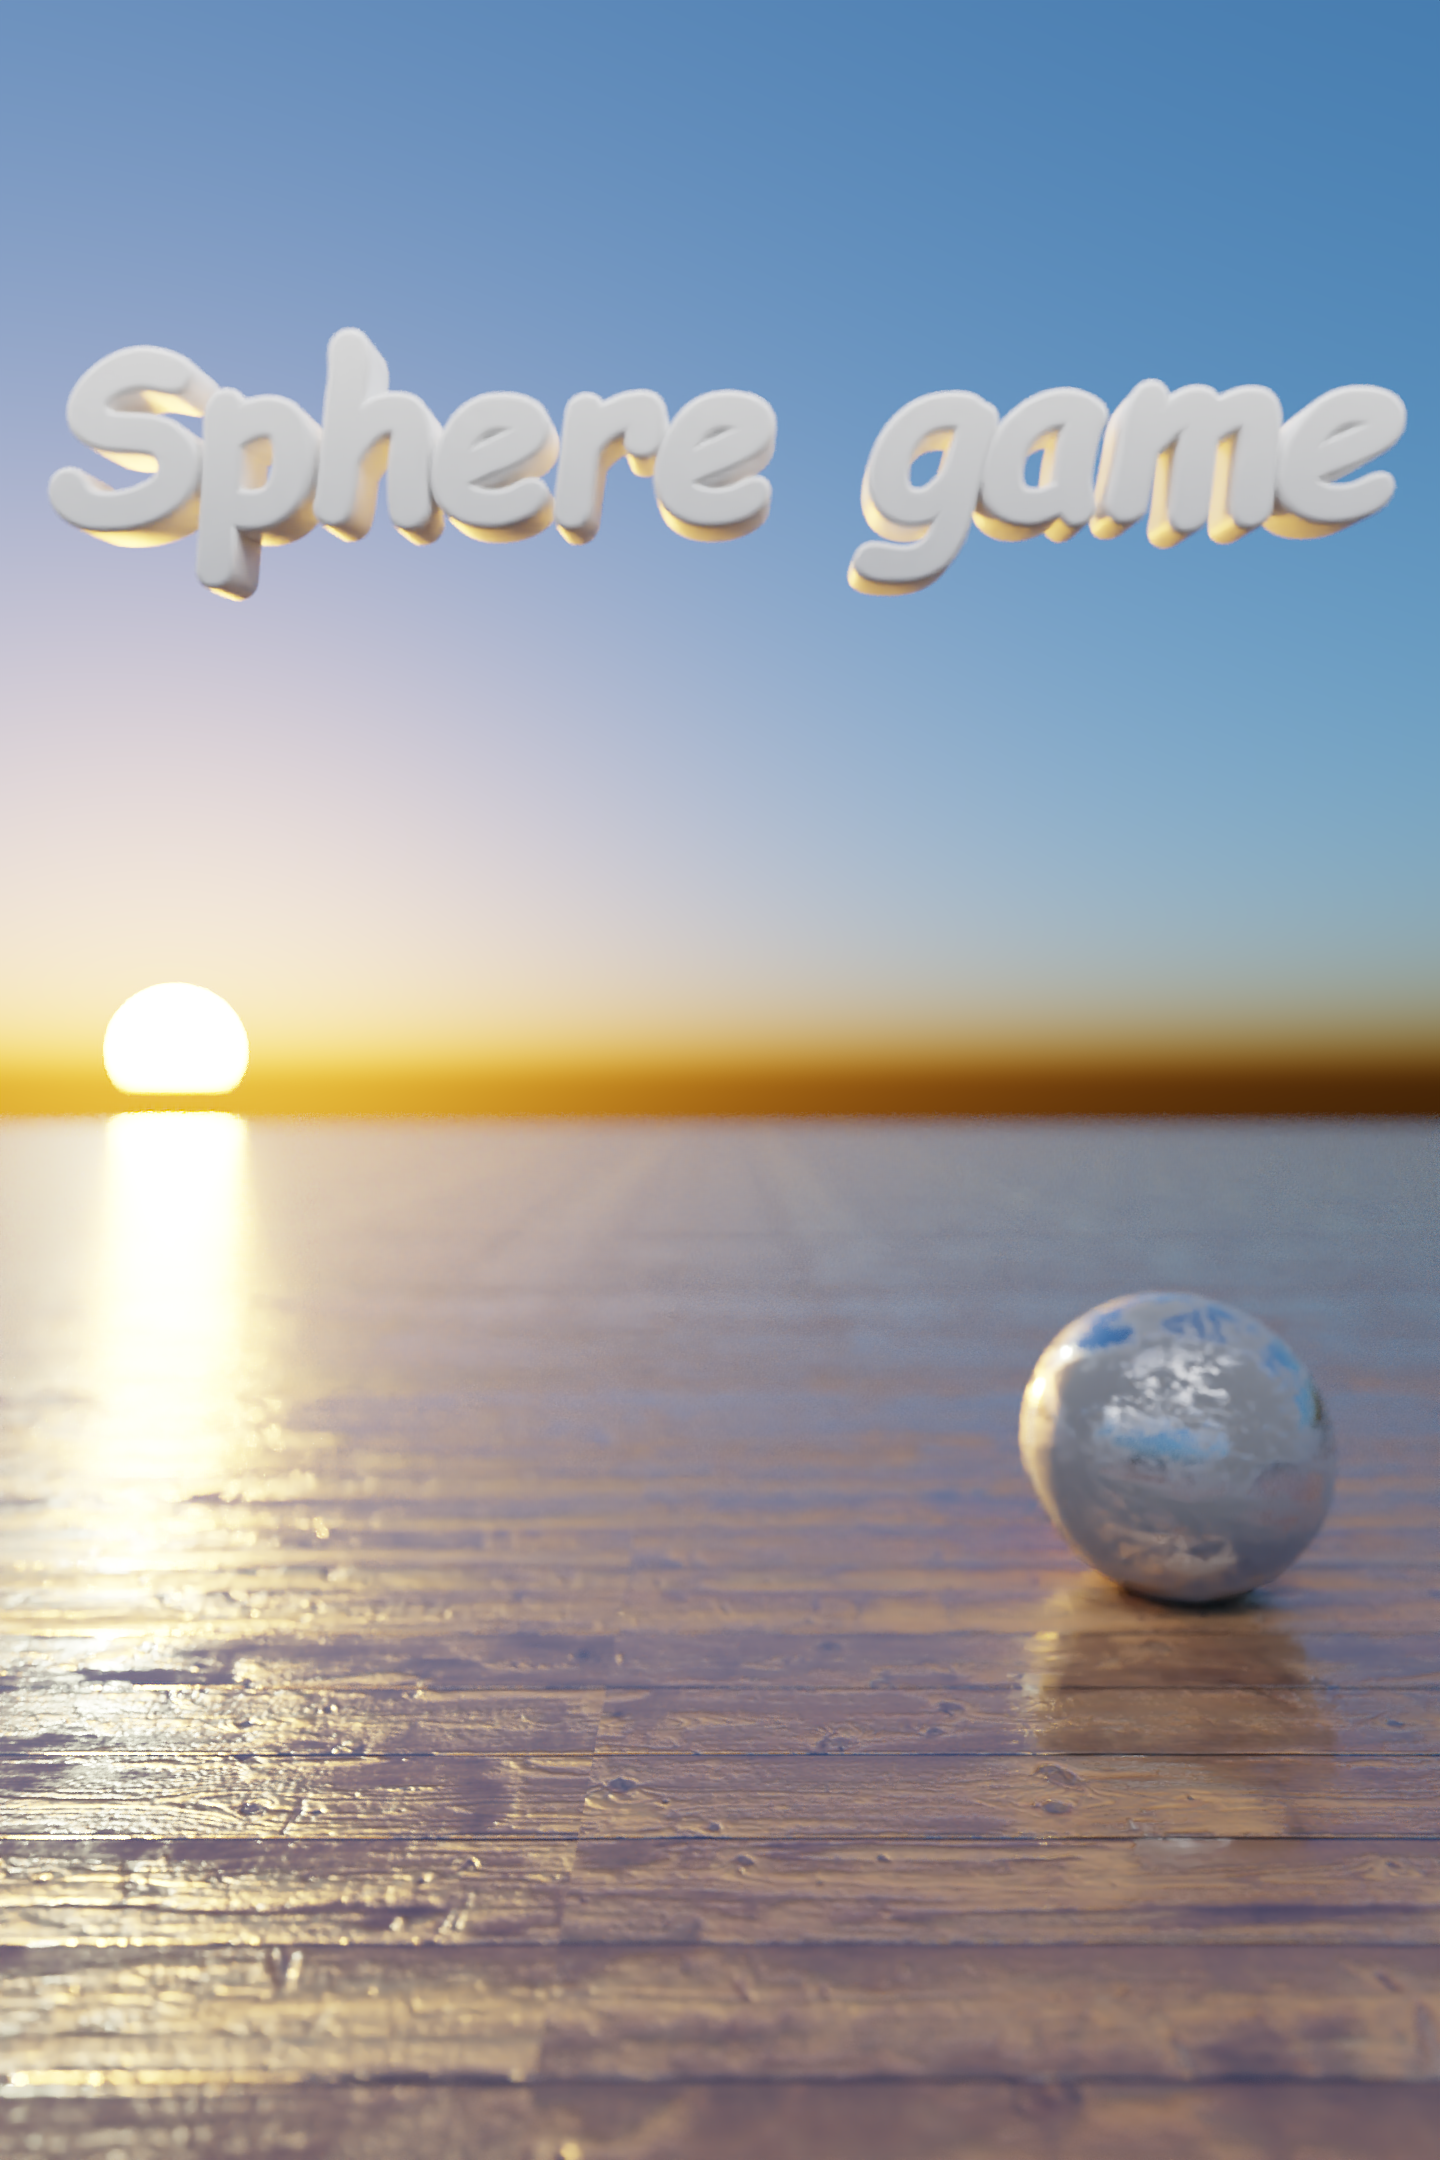 Sphere Game preview image 2